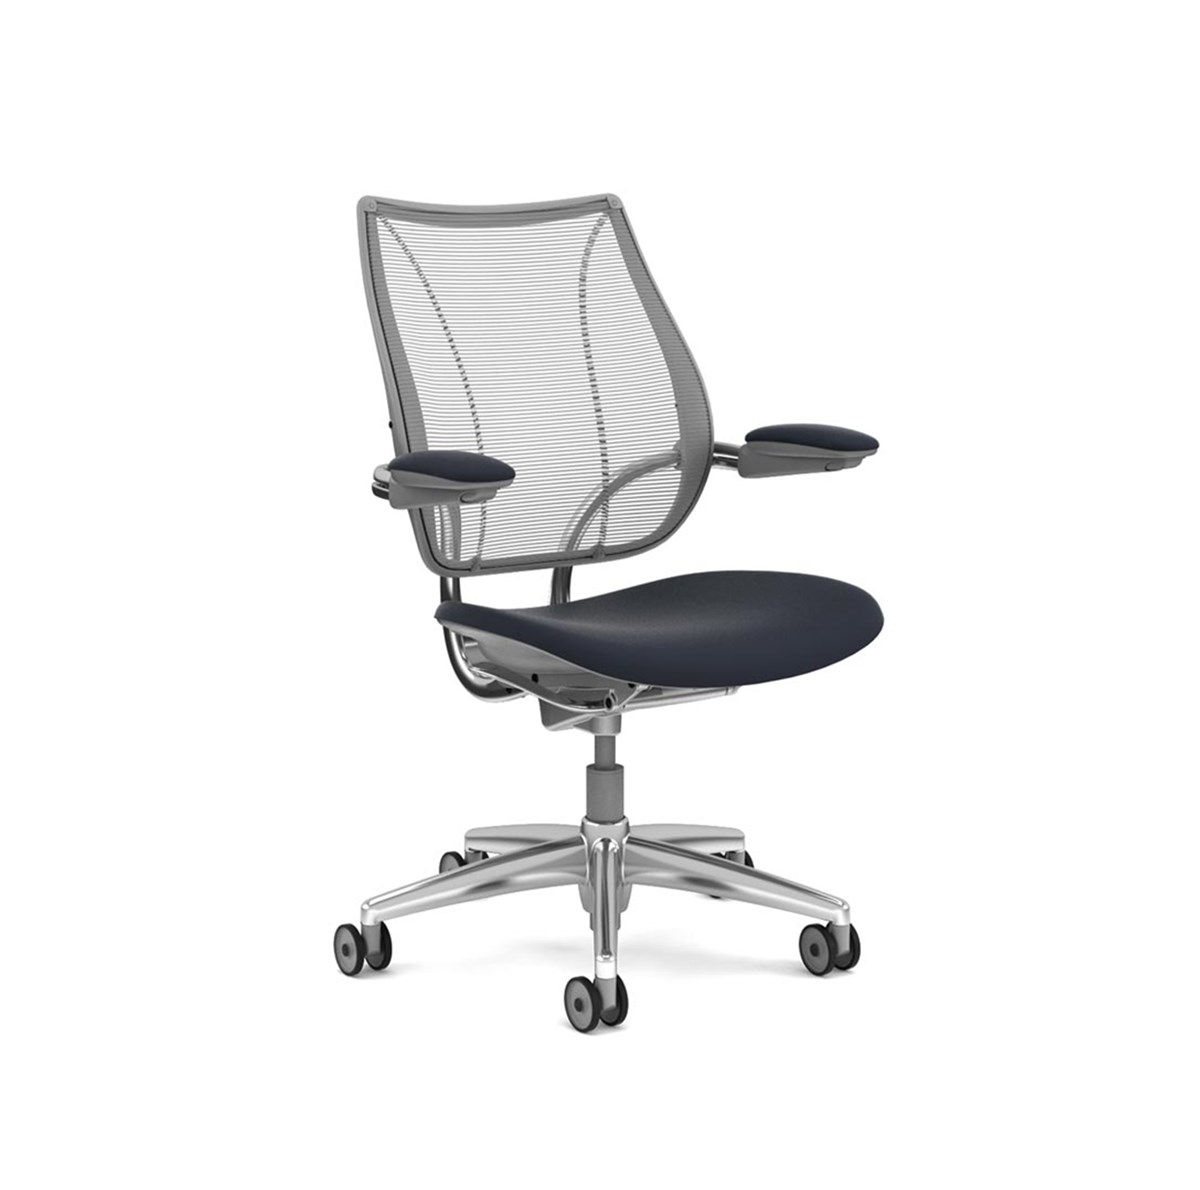 Humanscale-Niels-Diffrient-Liberty-Task-Chair-Matisse-1